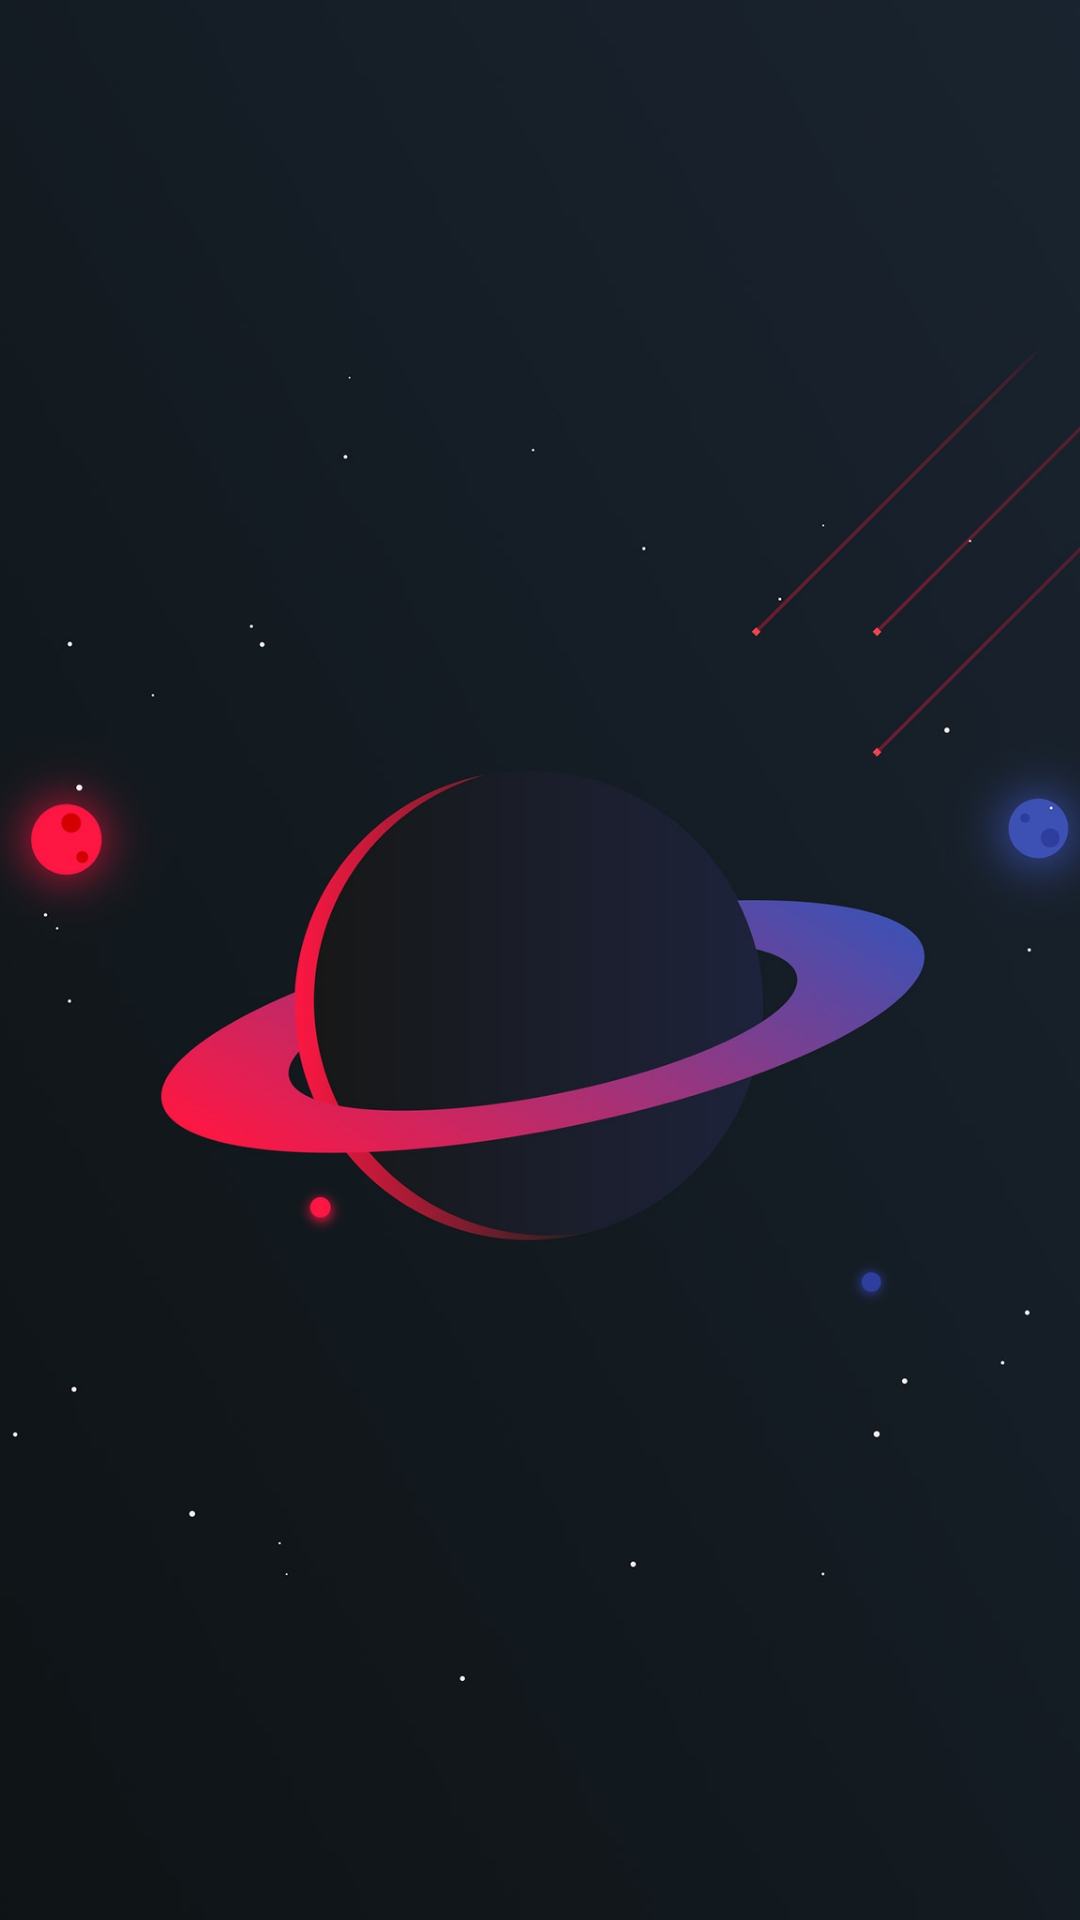 iPhone wallpaper planets3 Les 3Wallpapers iPhone du jour (20/03/2018)